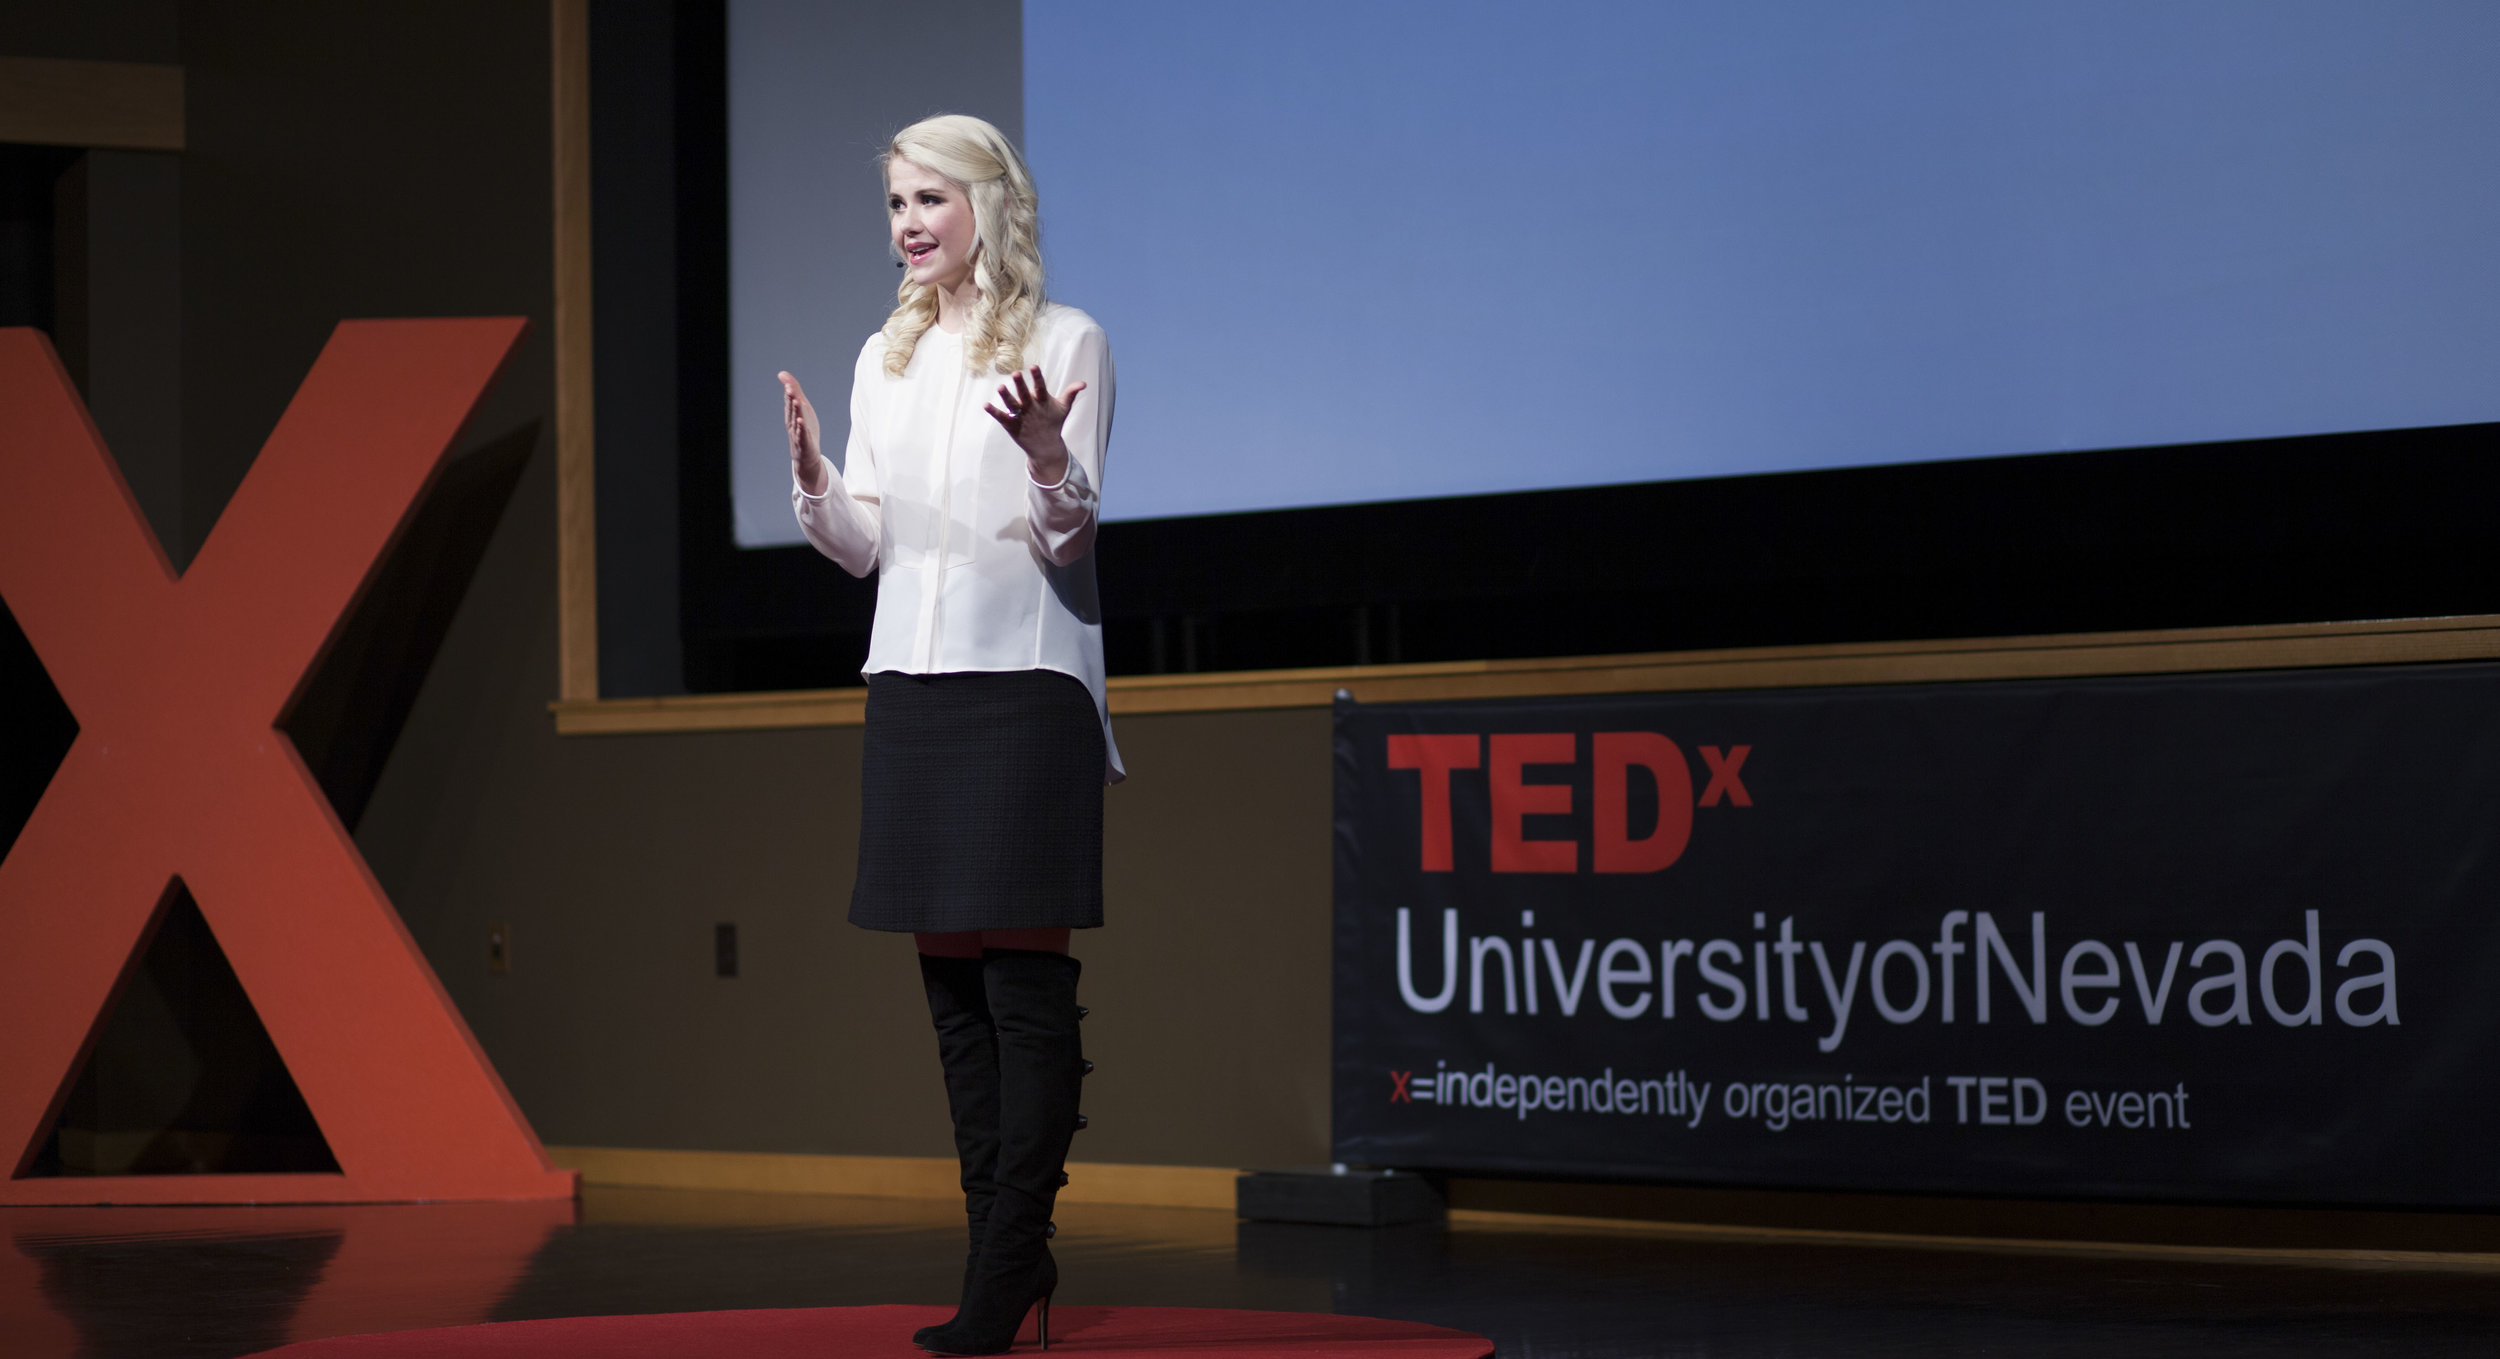 elizabeth smart_TEDx_JAN2014 copy (2).jpg